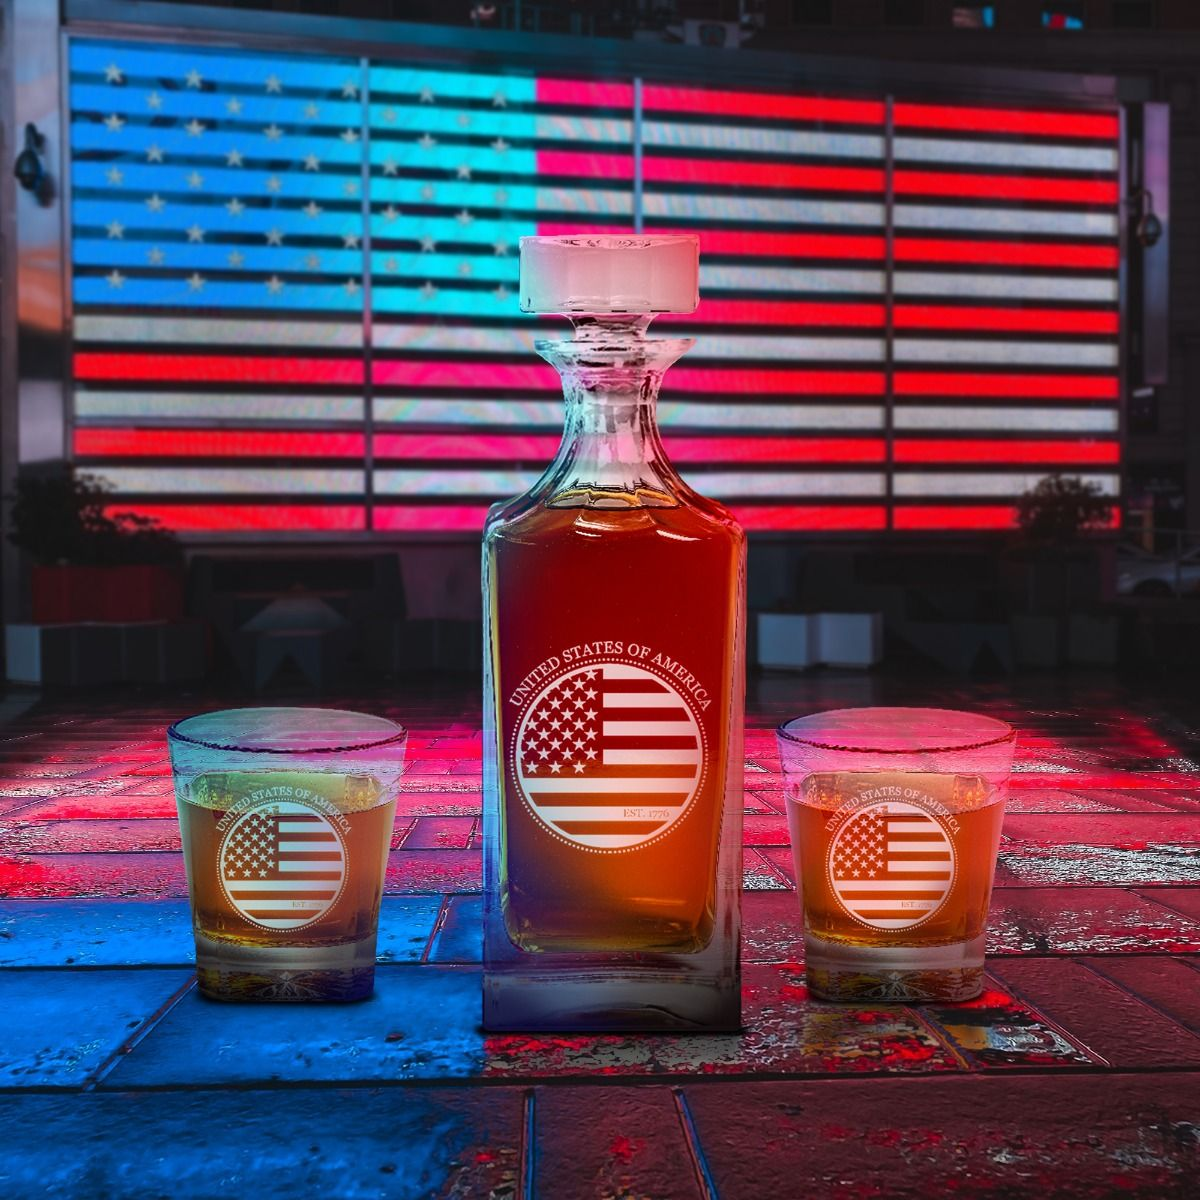 Pretty Image of American Flag Design Engraved Decanter set